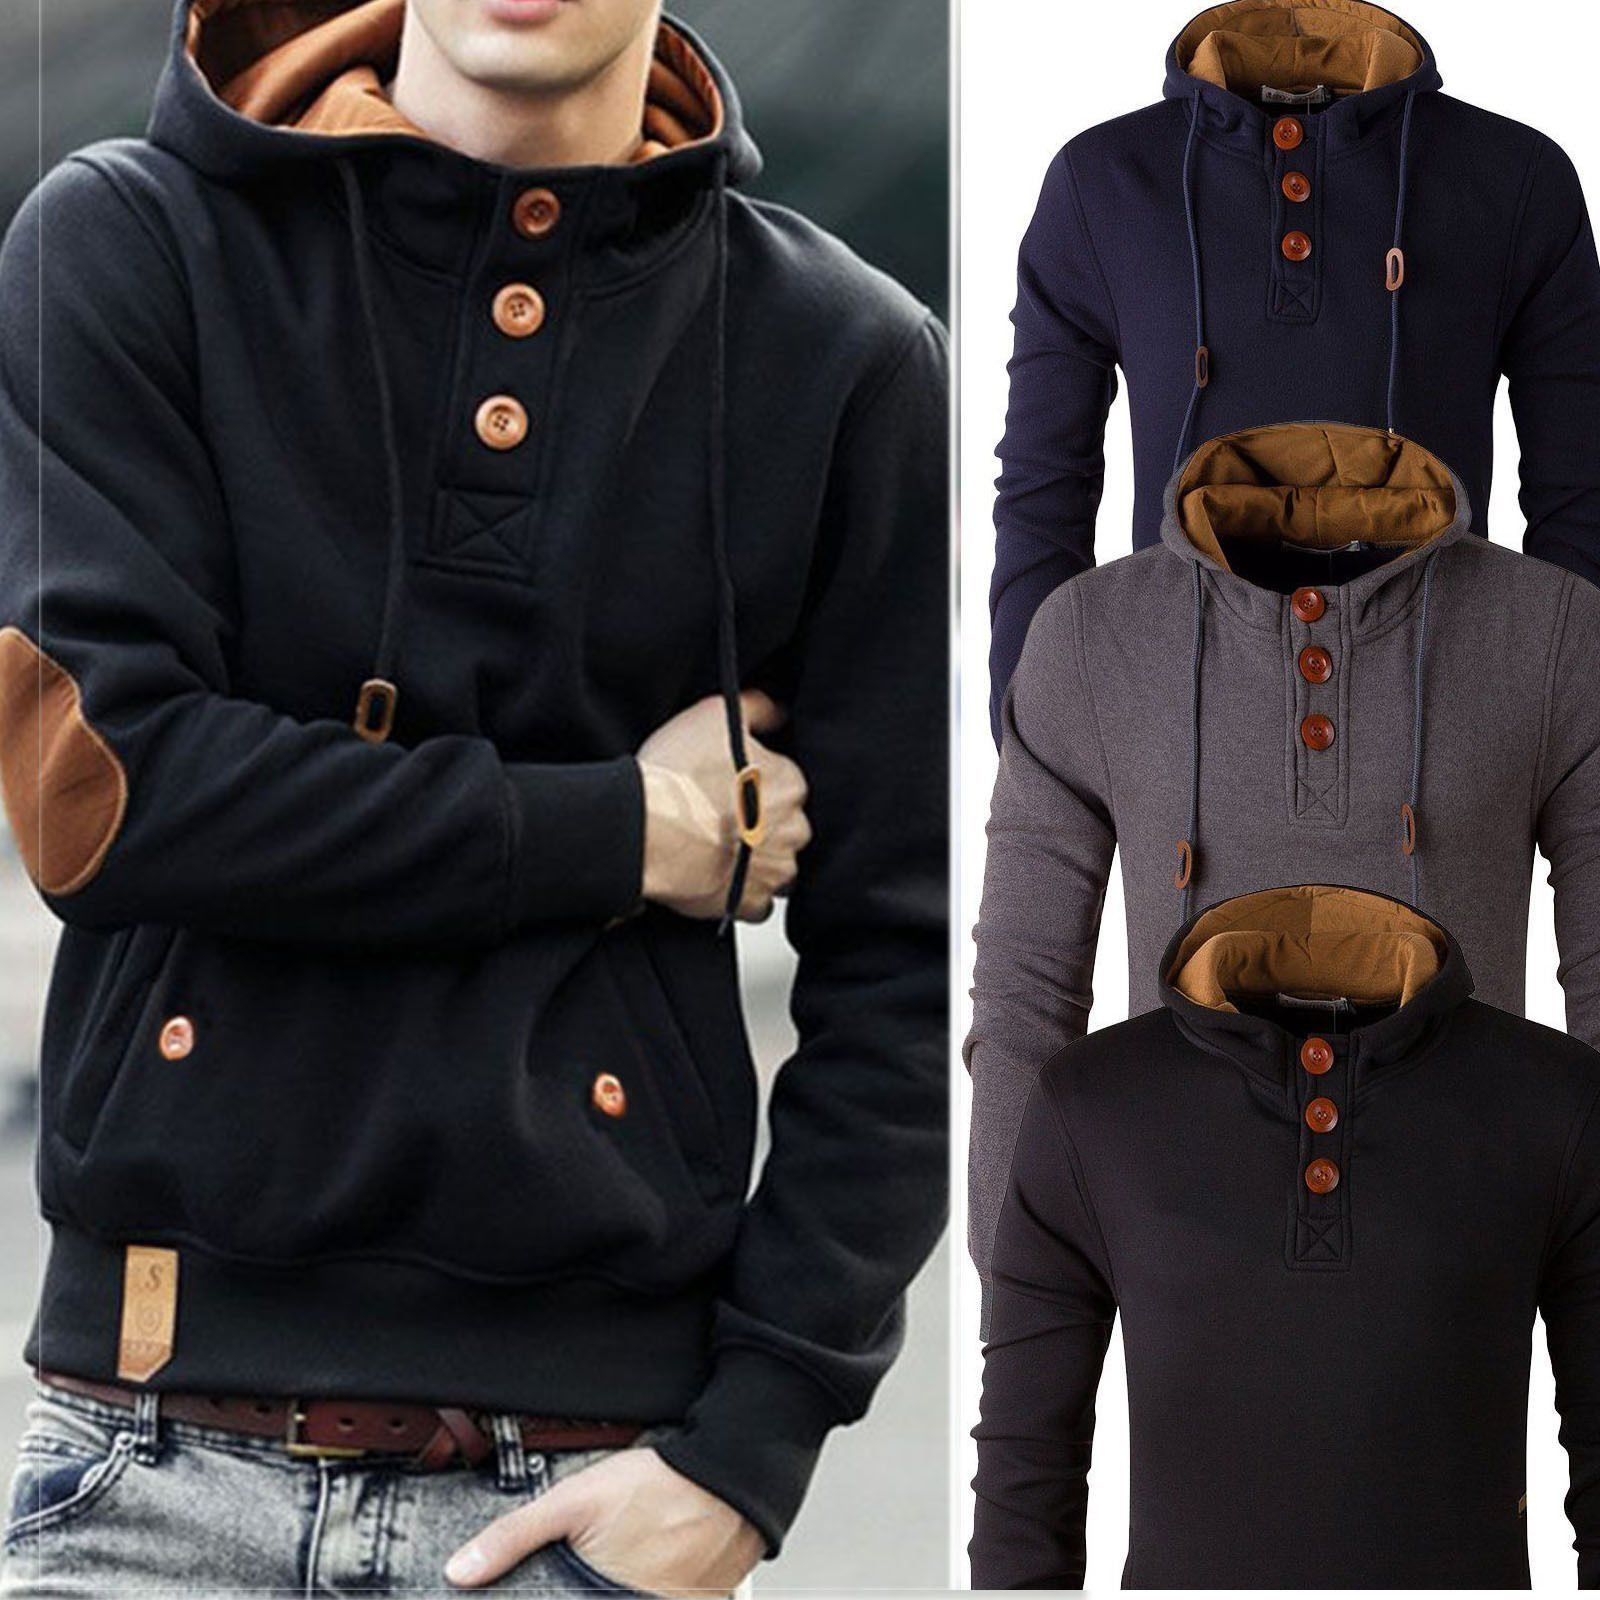 Stylish Men's Slim Warm Hooded Sweatshirt Hoodie Coat Jacket ...